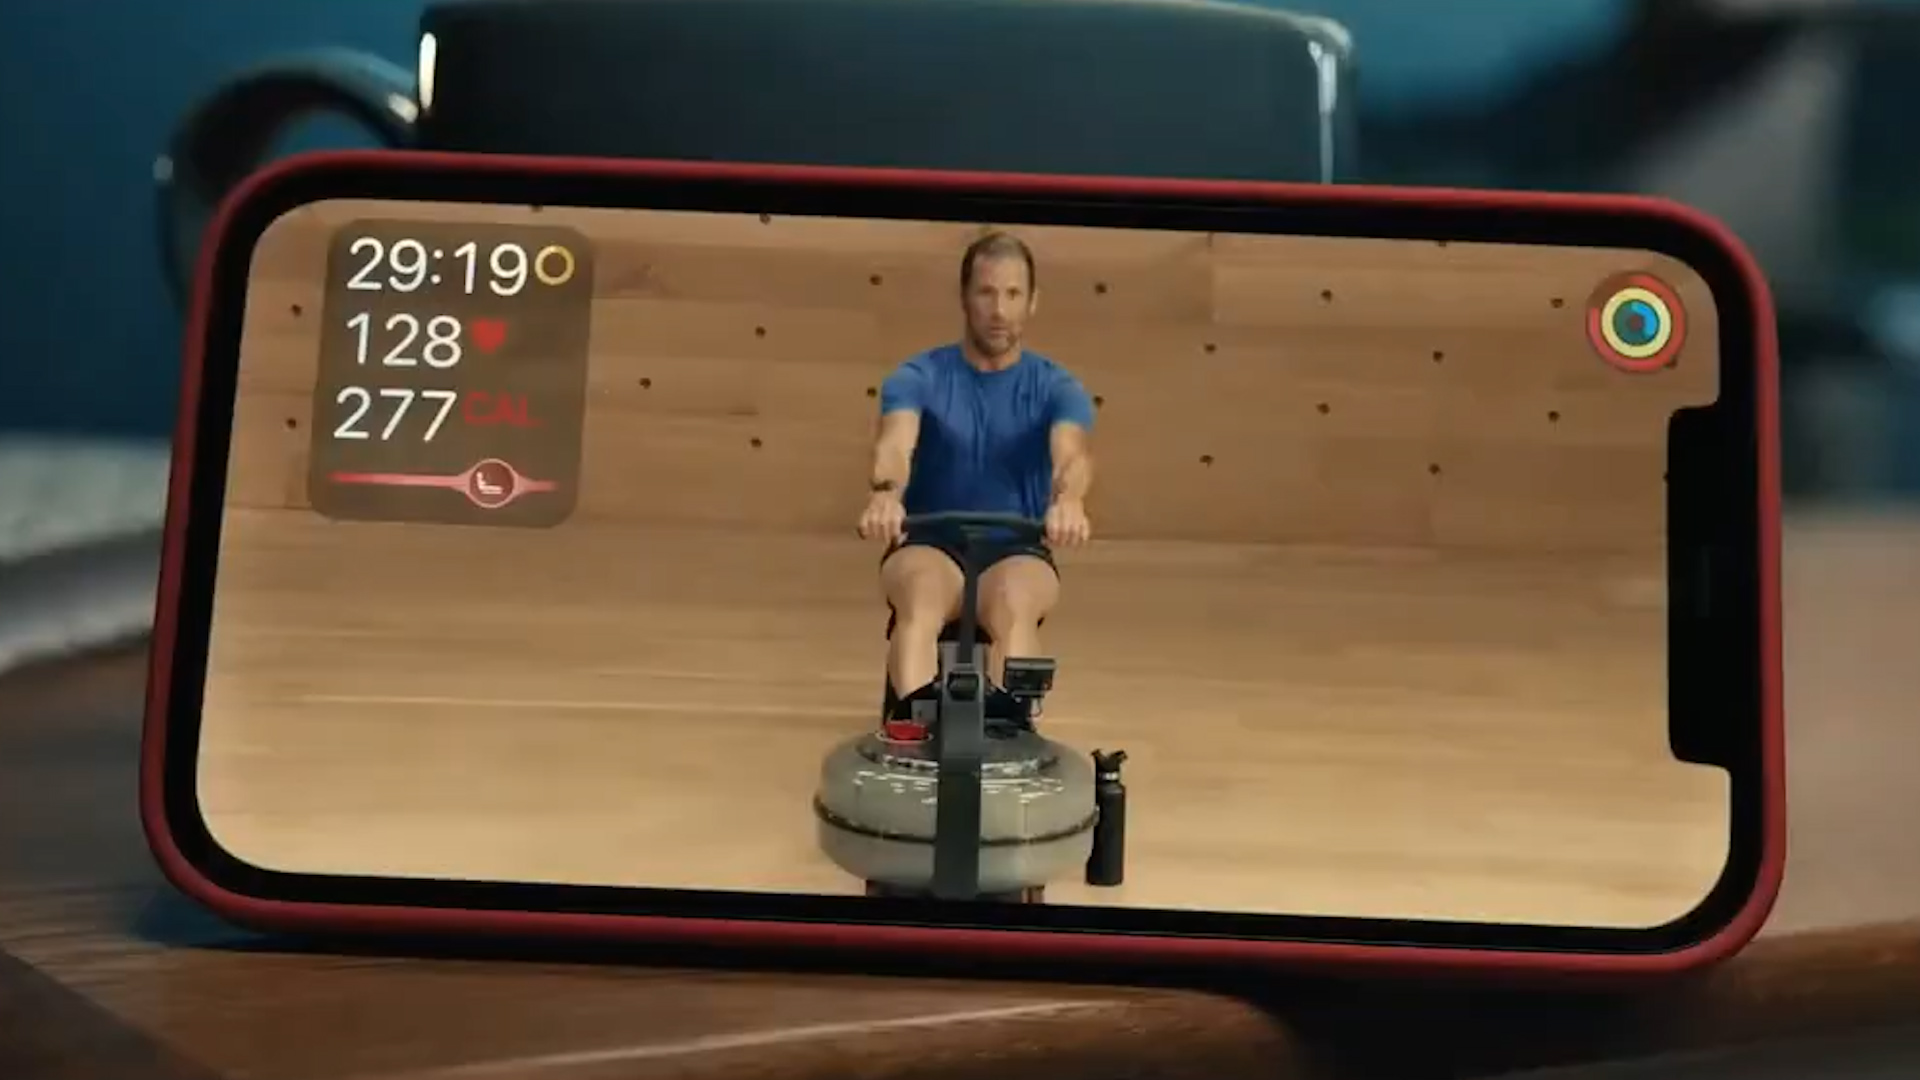 Video: Apple Fitness Plus adds new workout routines